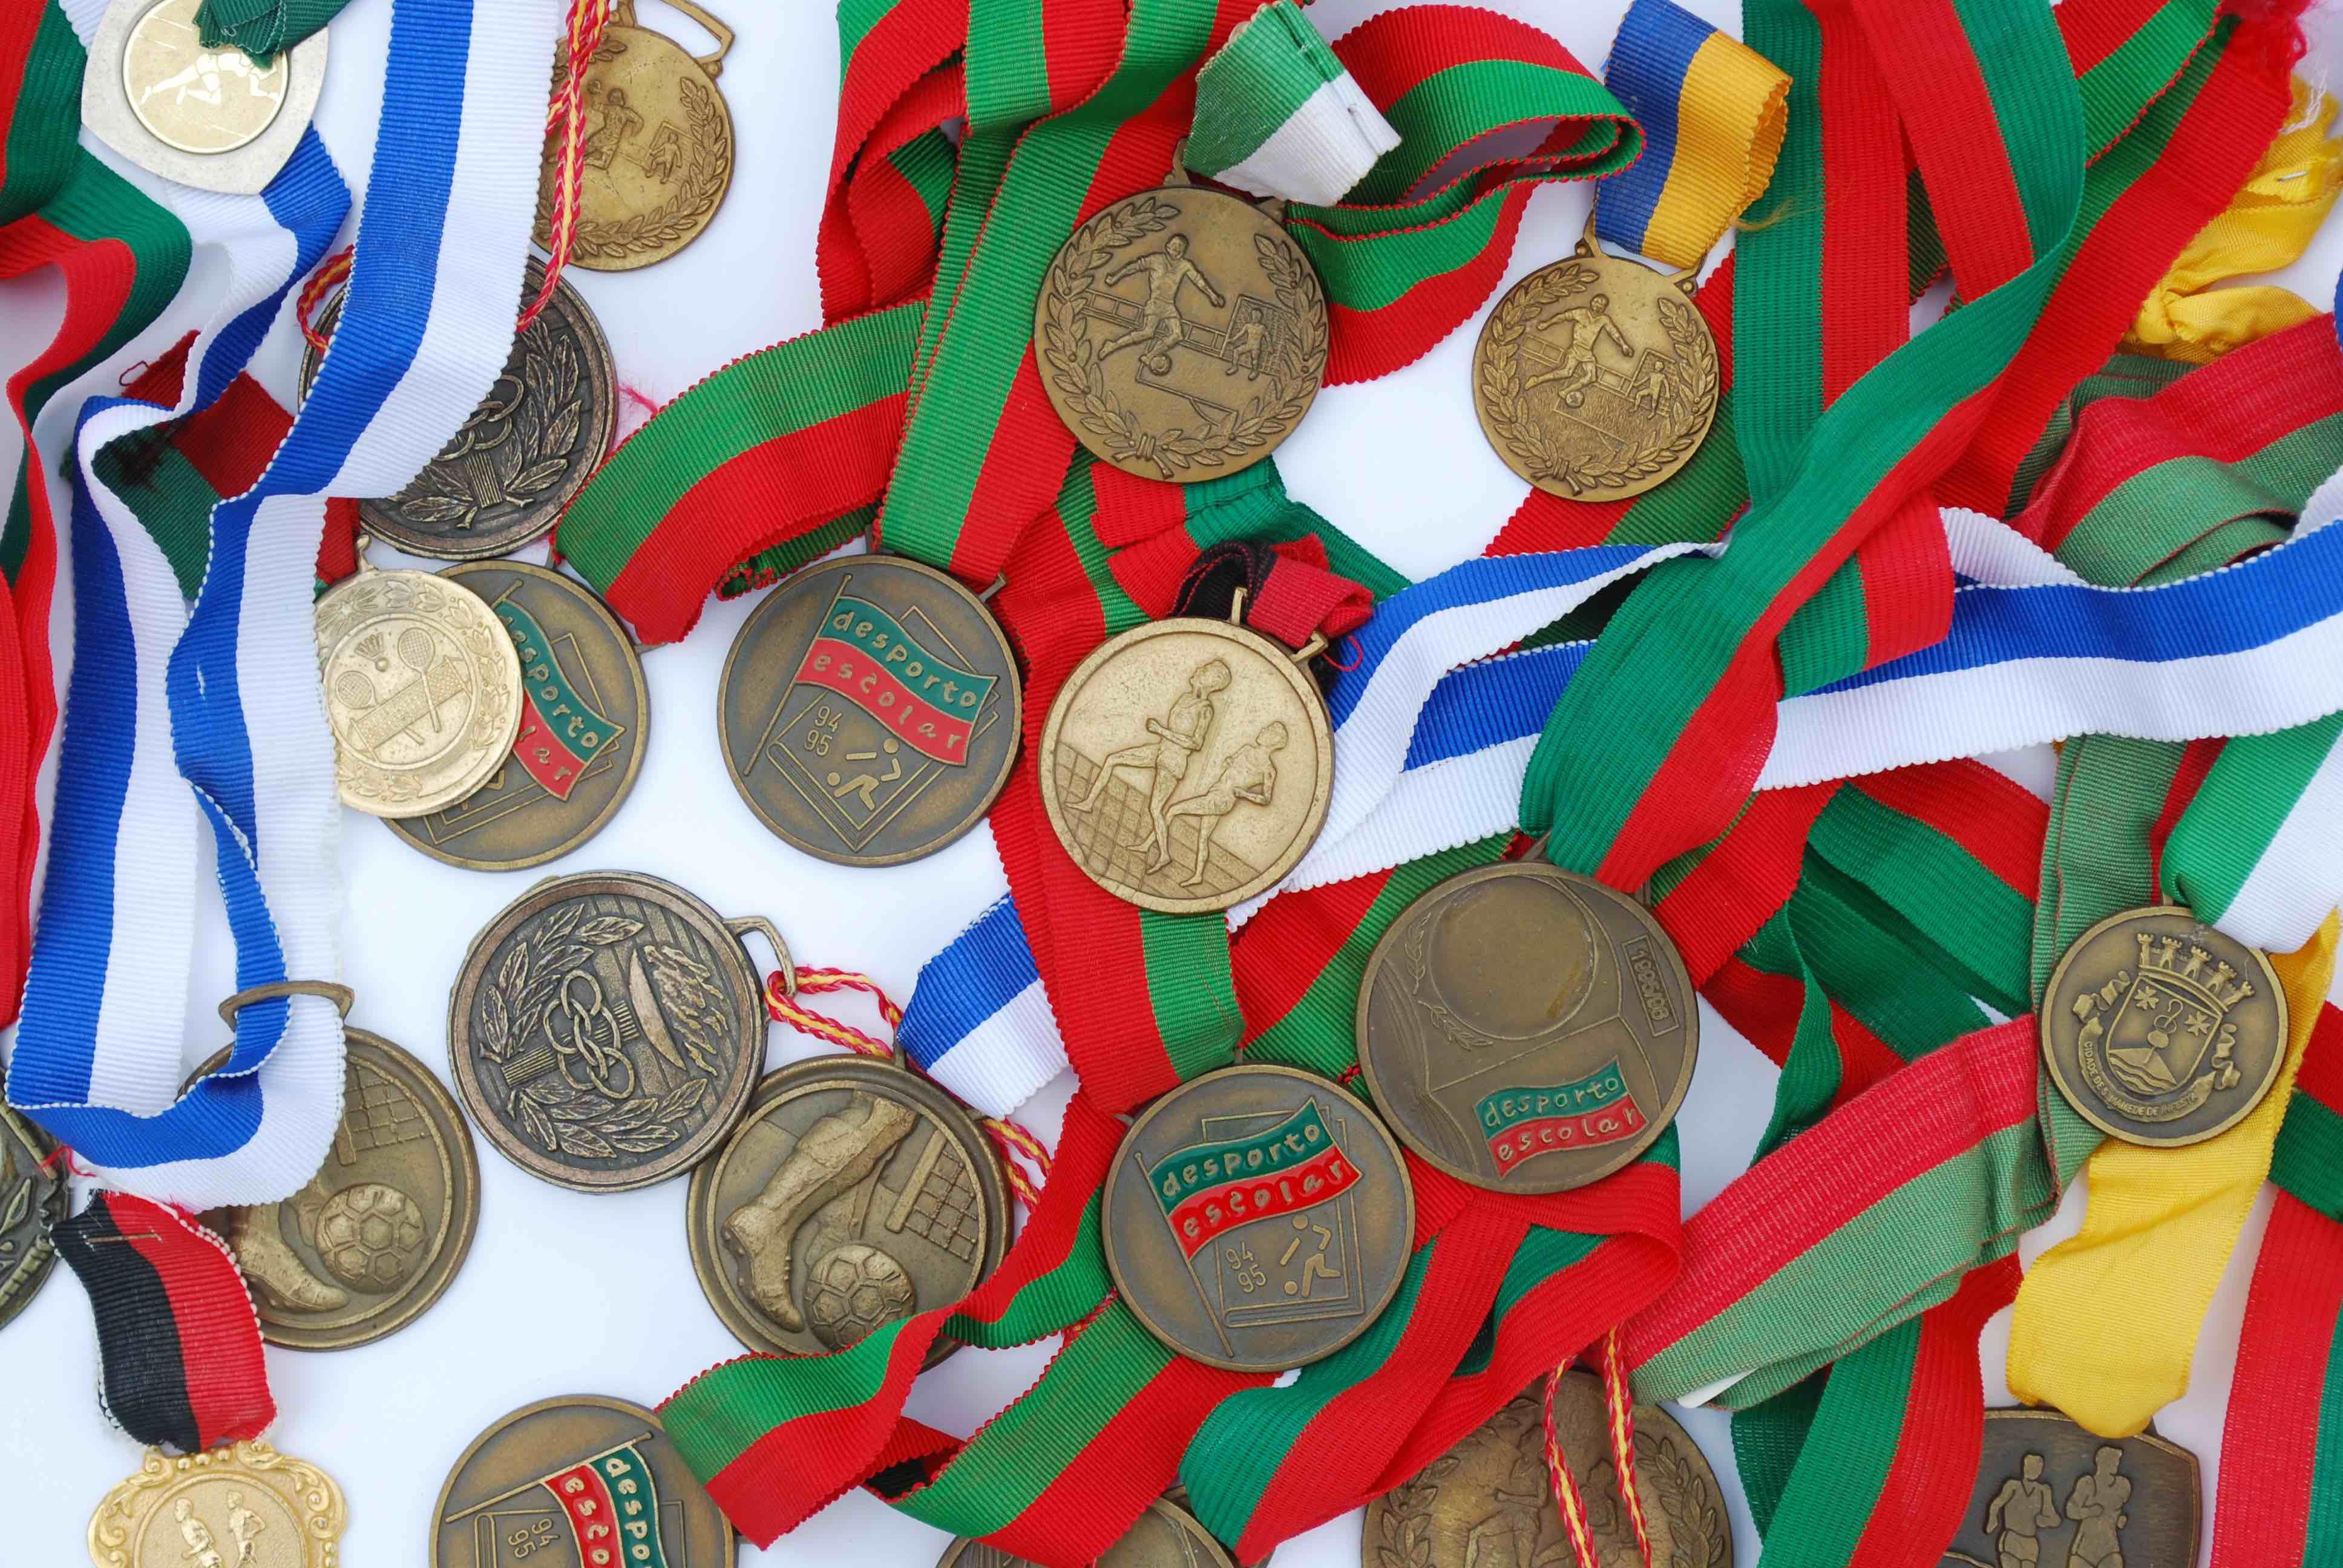 photo of a collection of medal awards from a sport competition